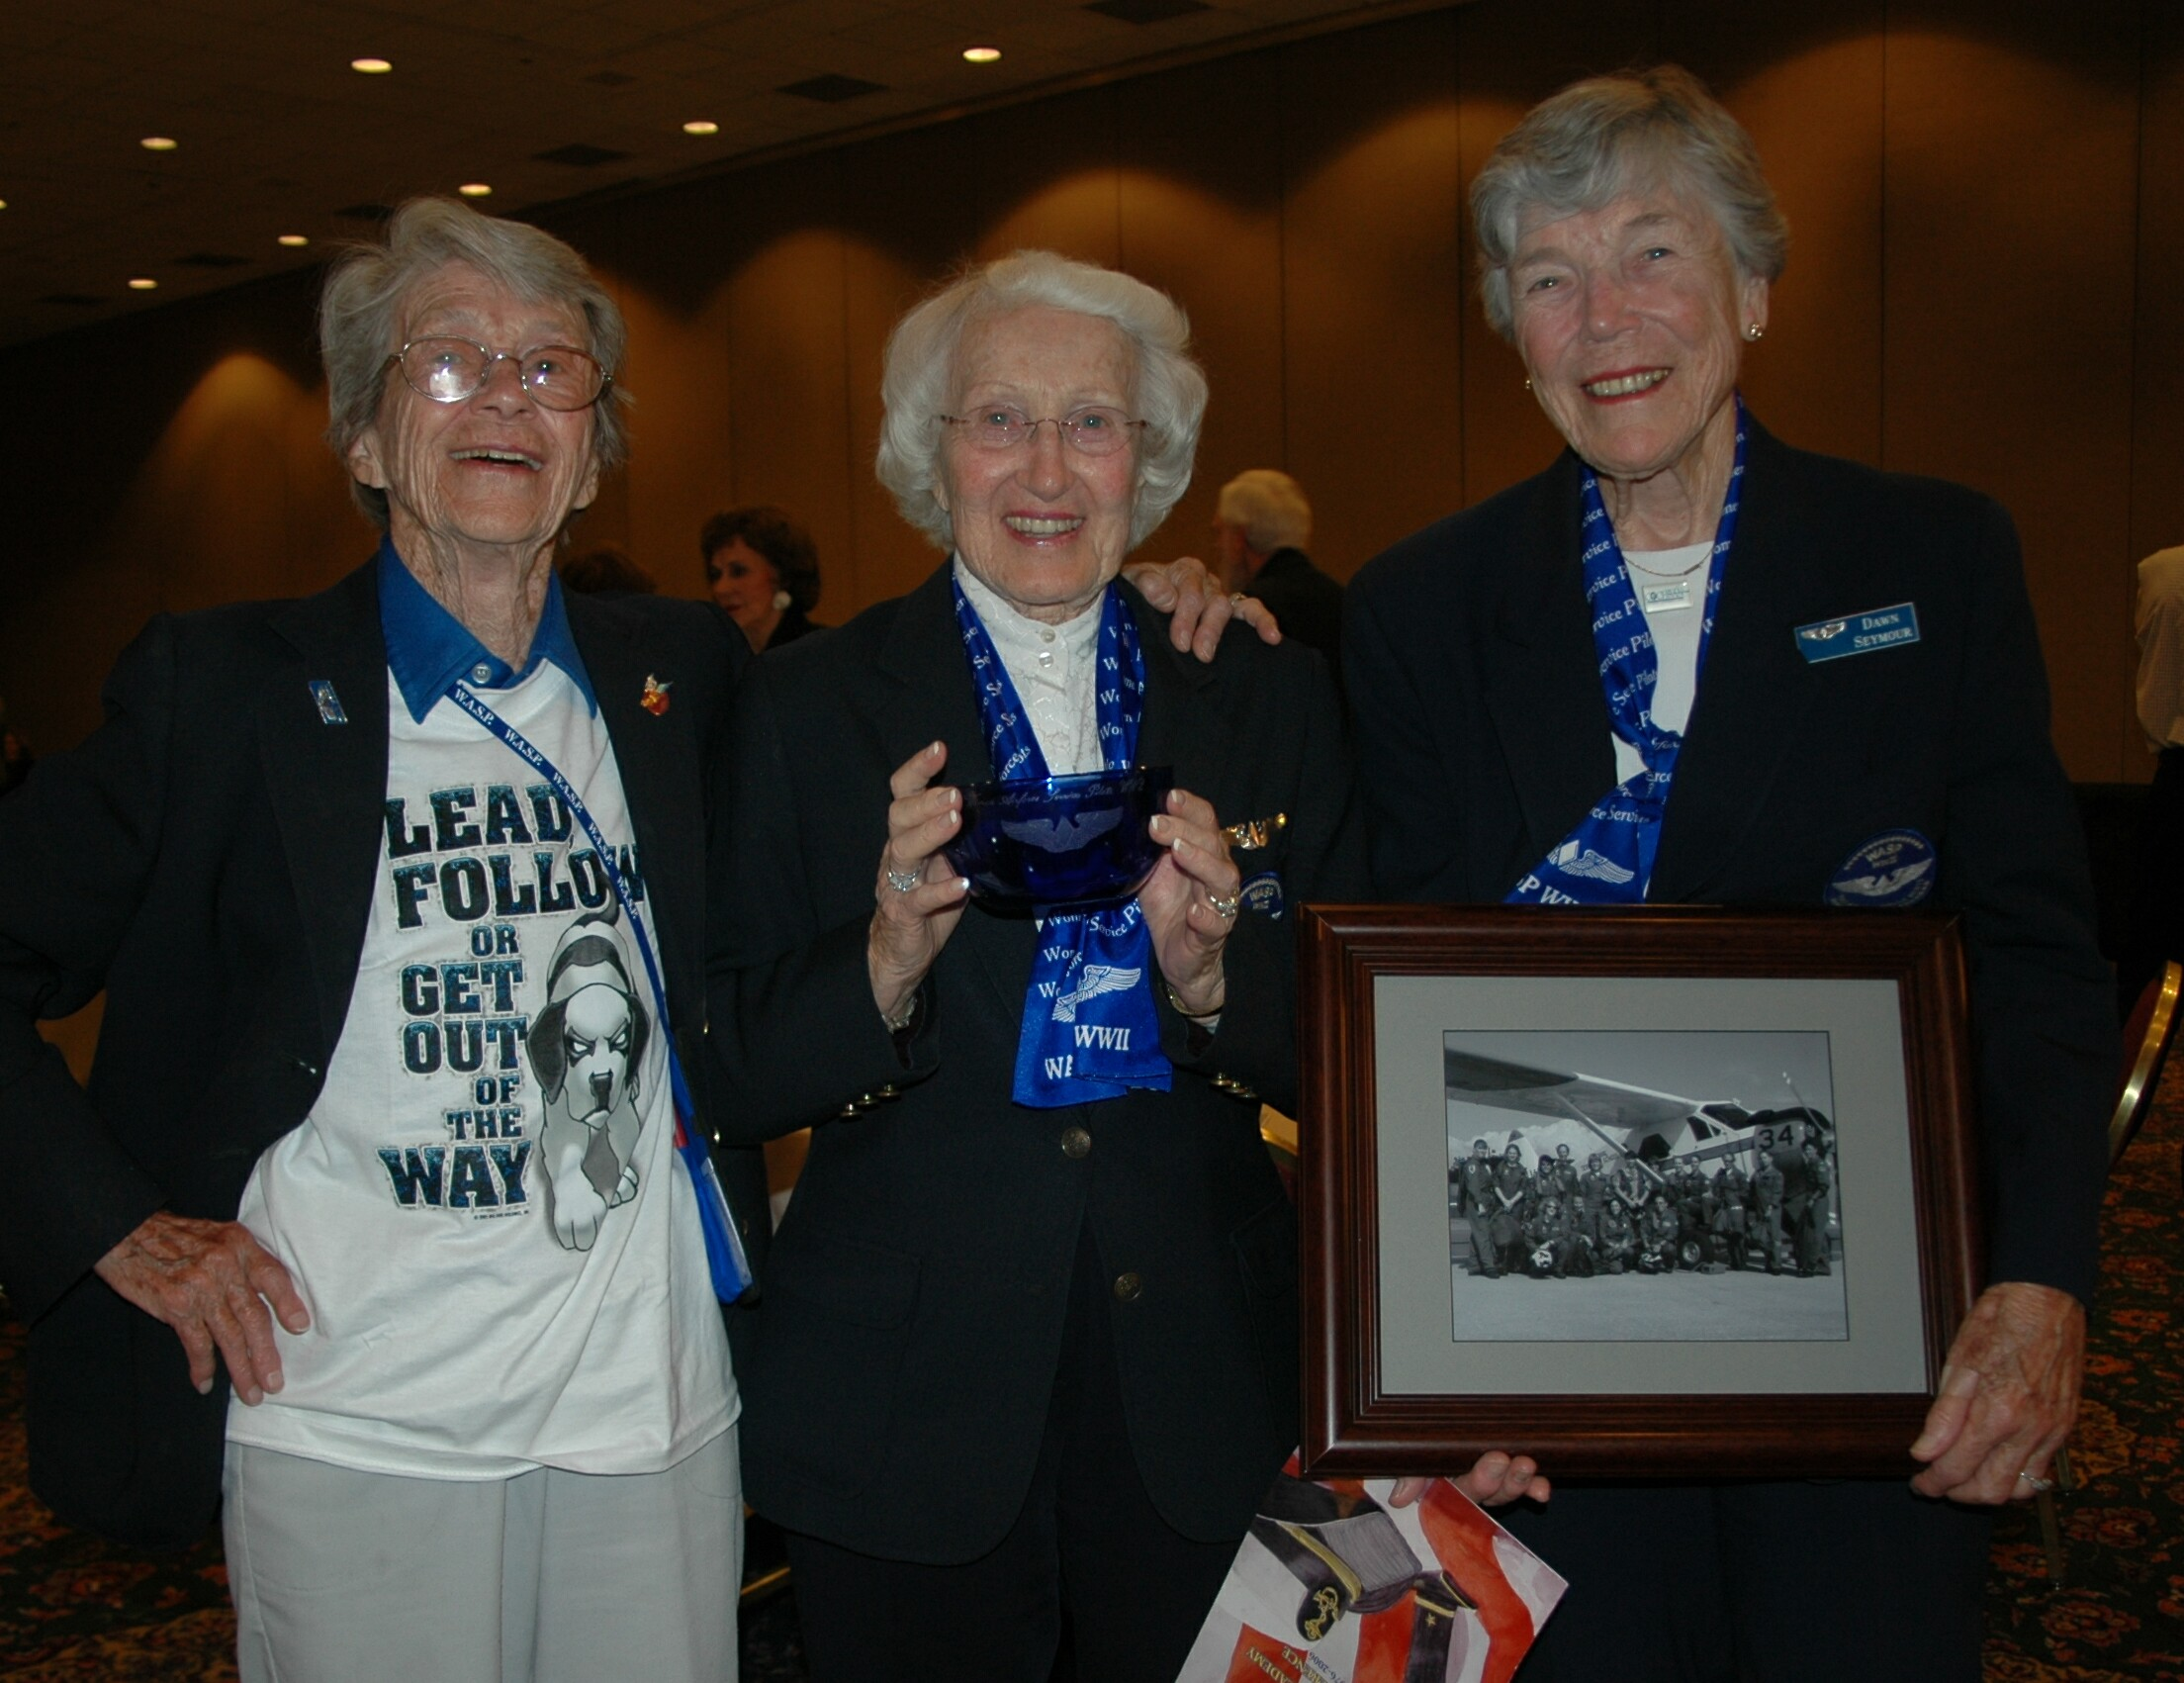 Dot Lewis, Jan Goodrum and Dawn Seymour at the Portand 2006 WASP reunion